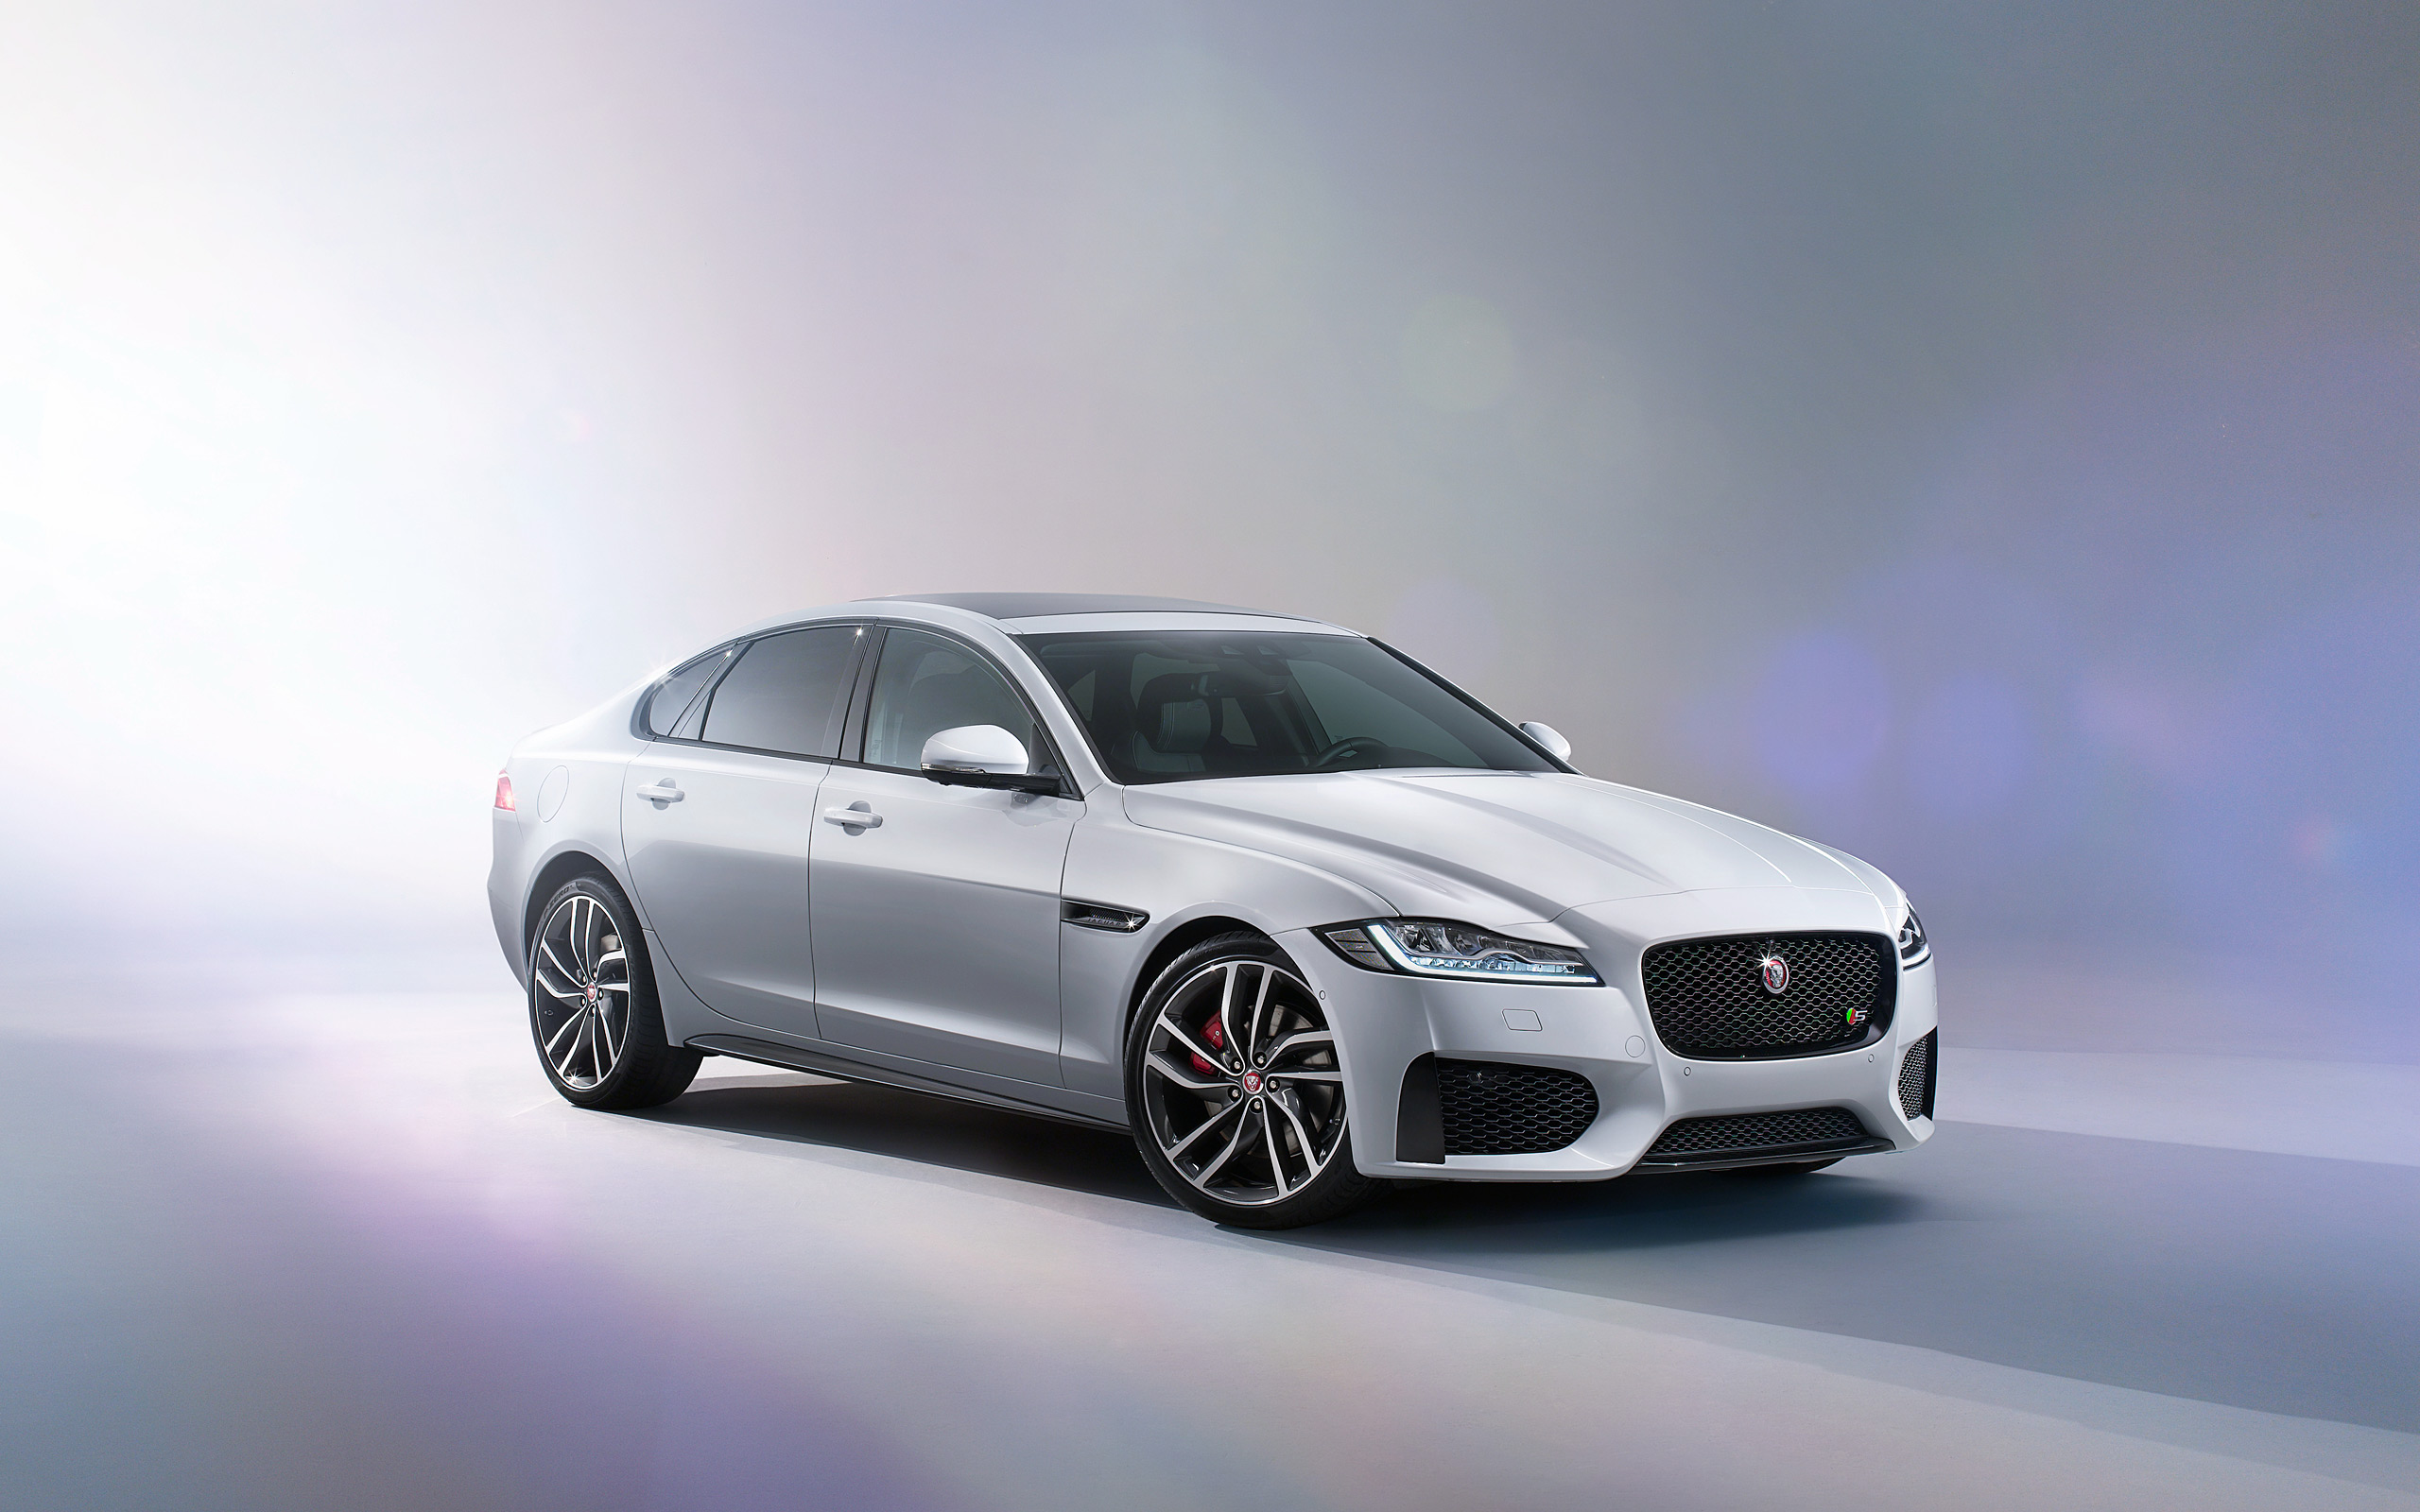 2016 jaguar xf wallpaper 47444